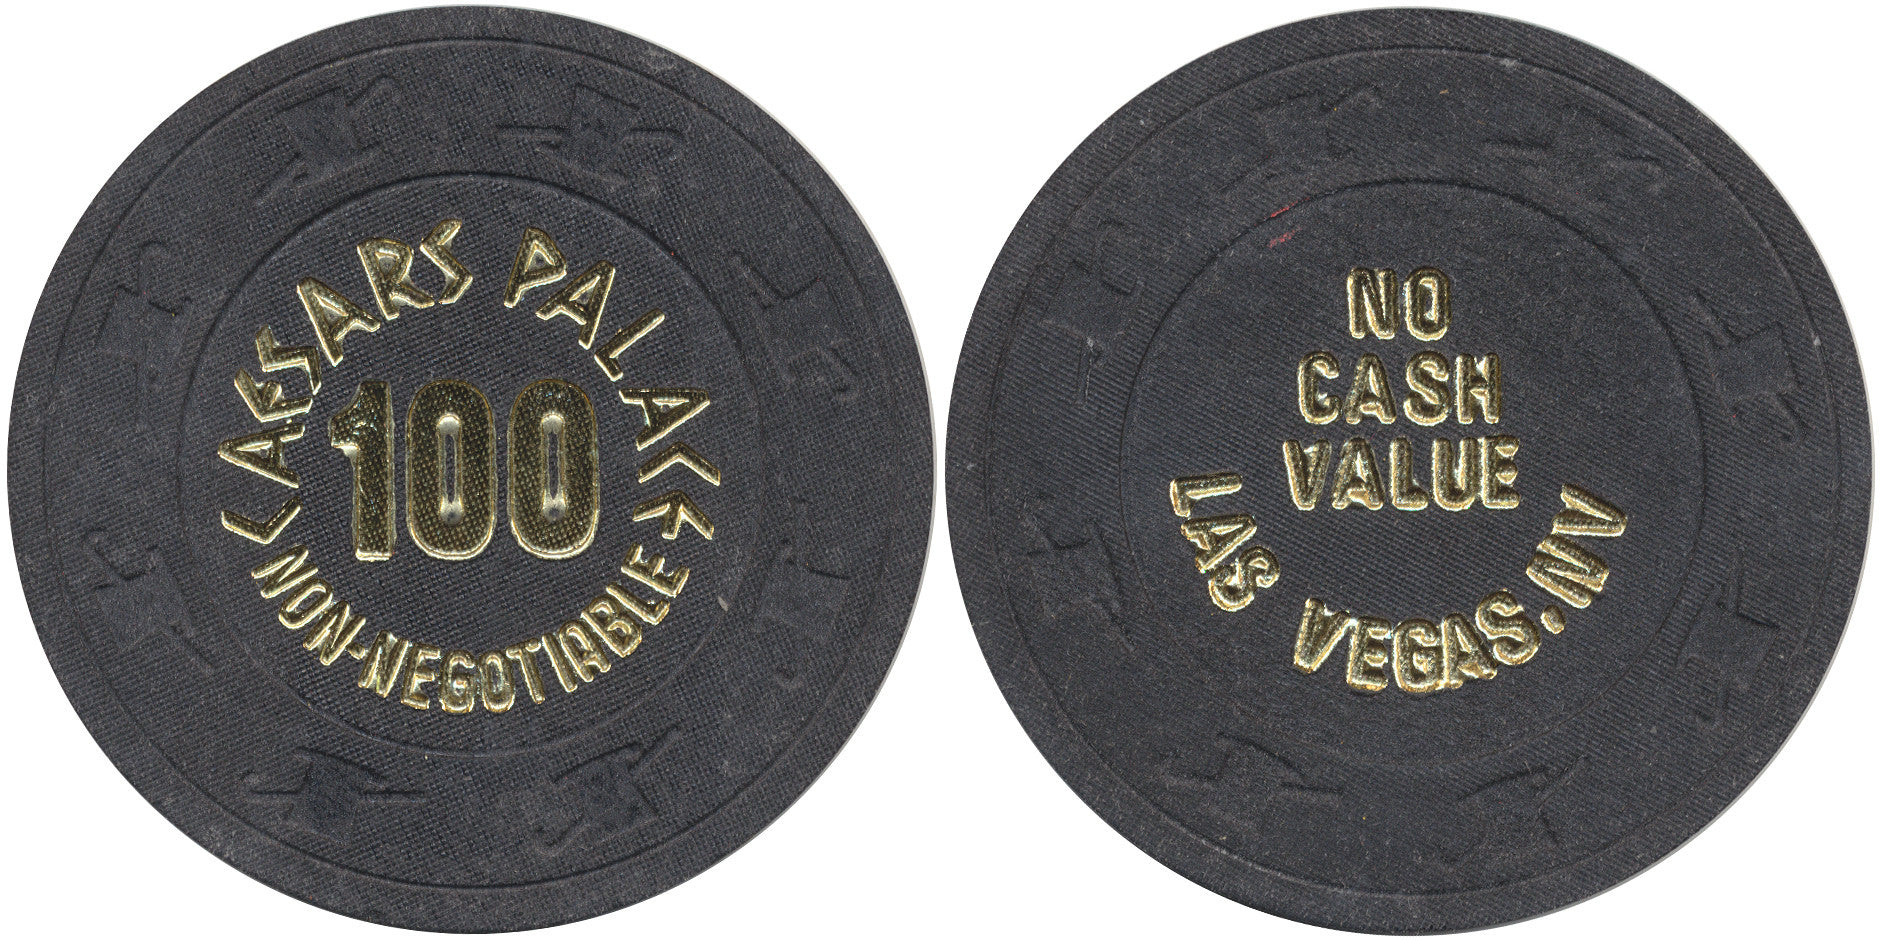 Caesars Palace 100 (black 1980s) Chip - Spinettis Gaming - 1